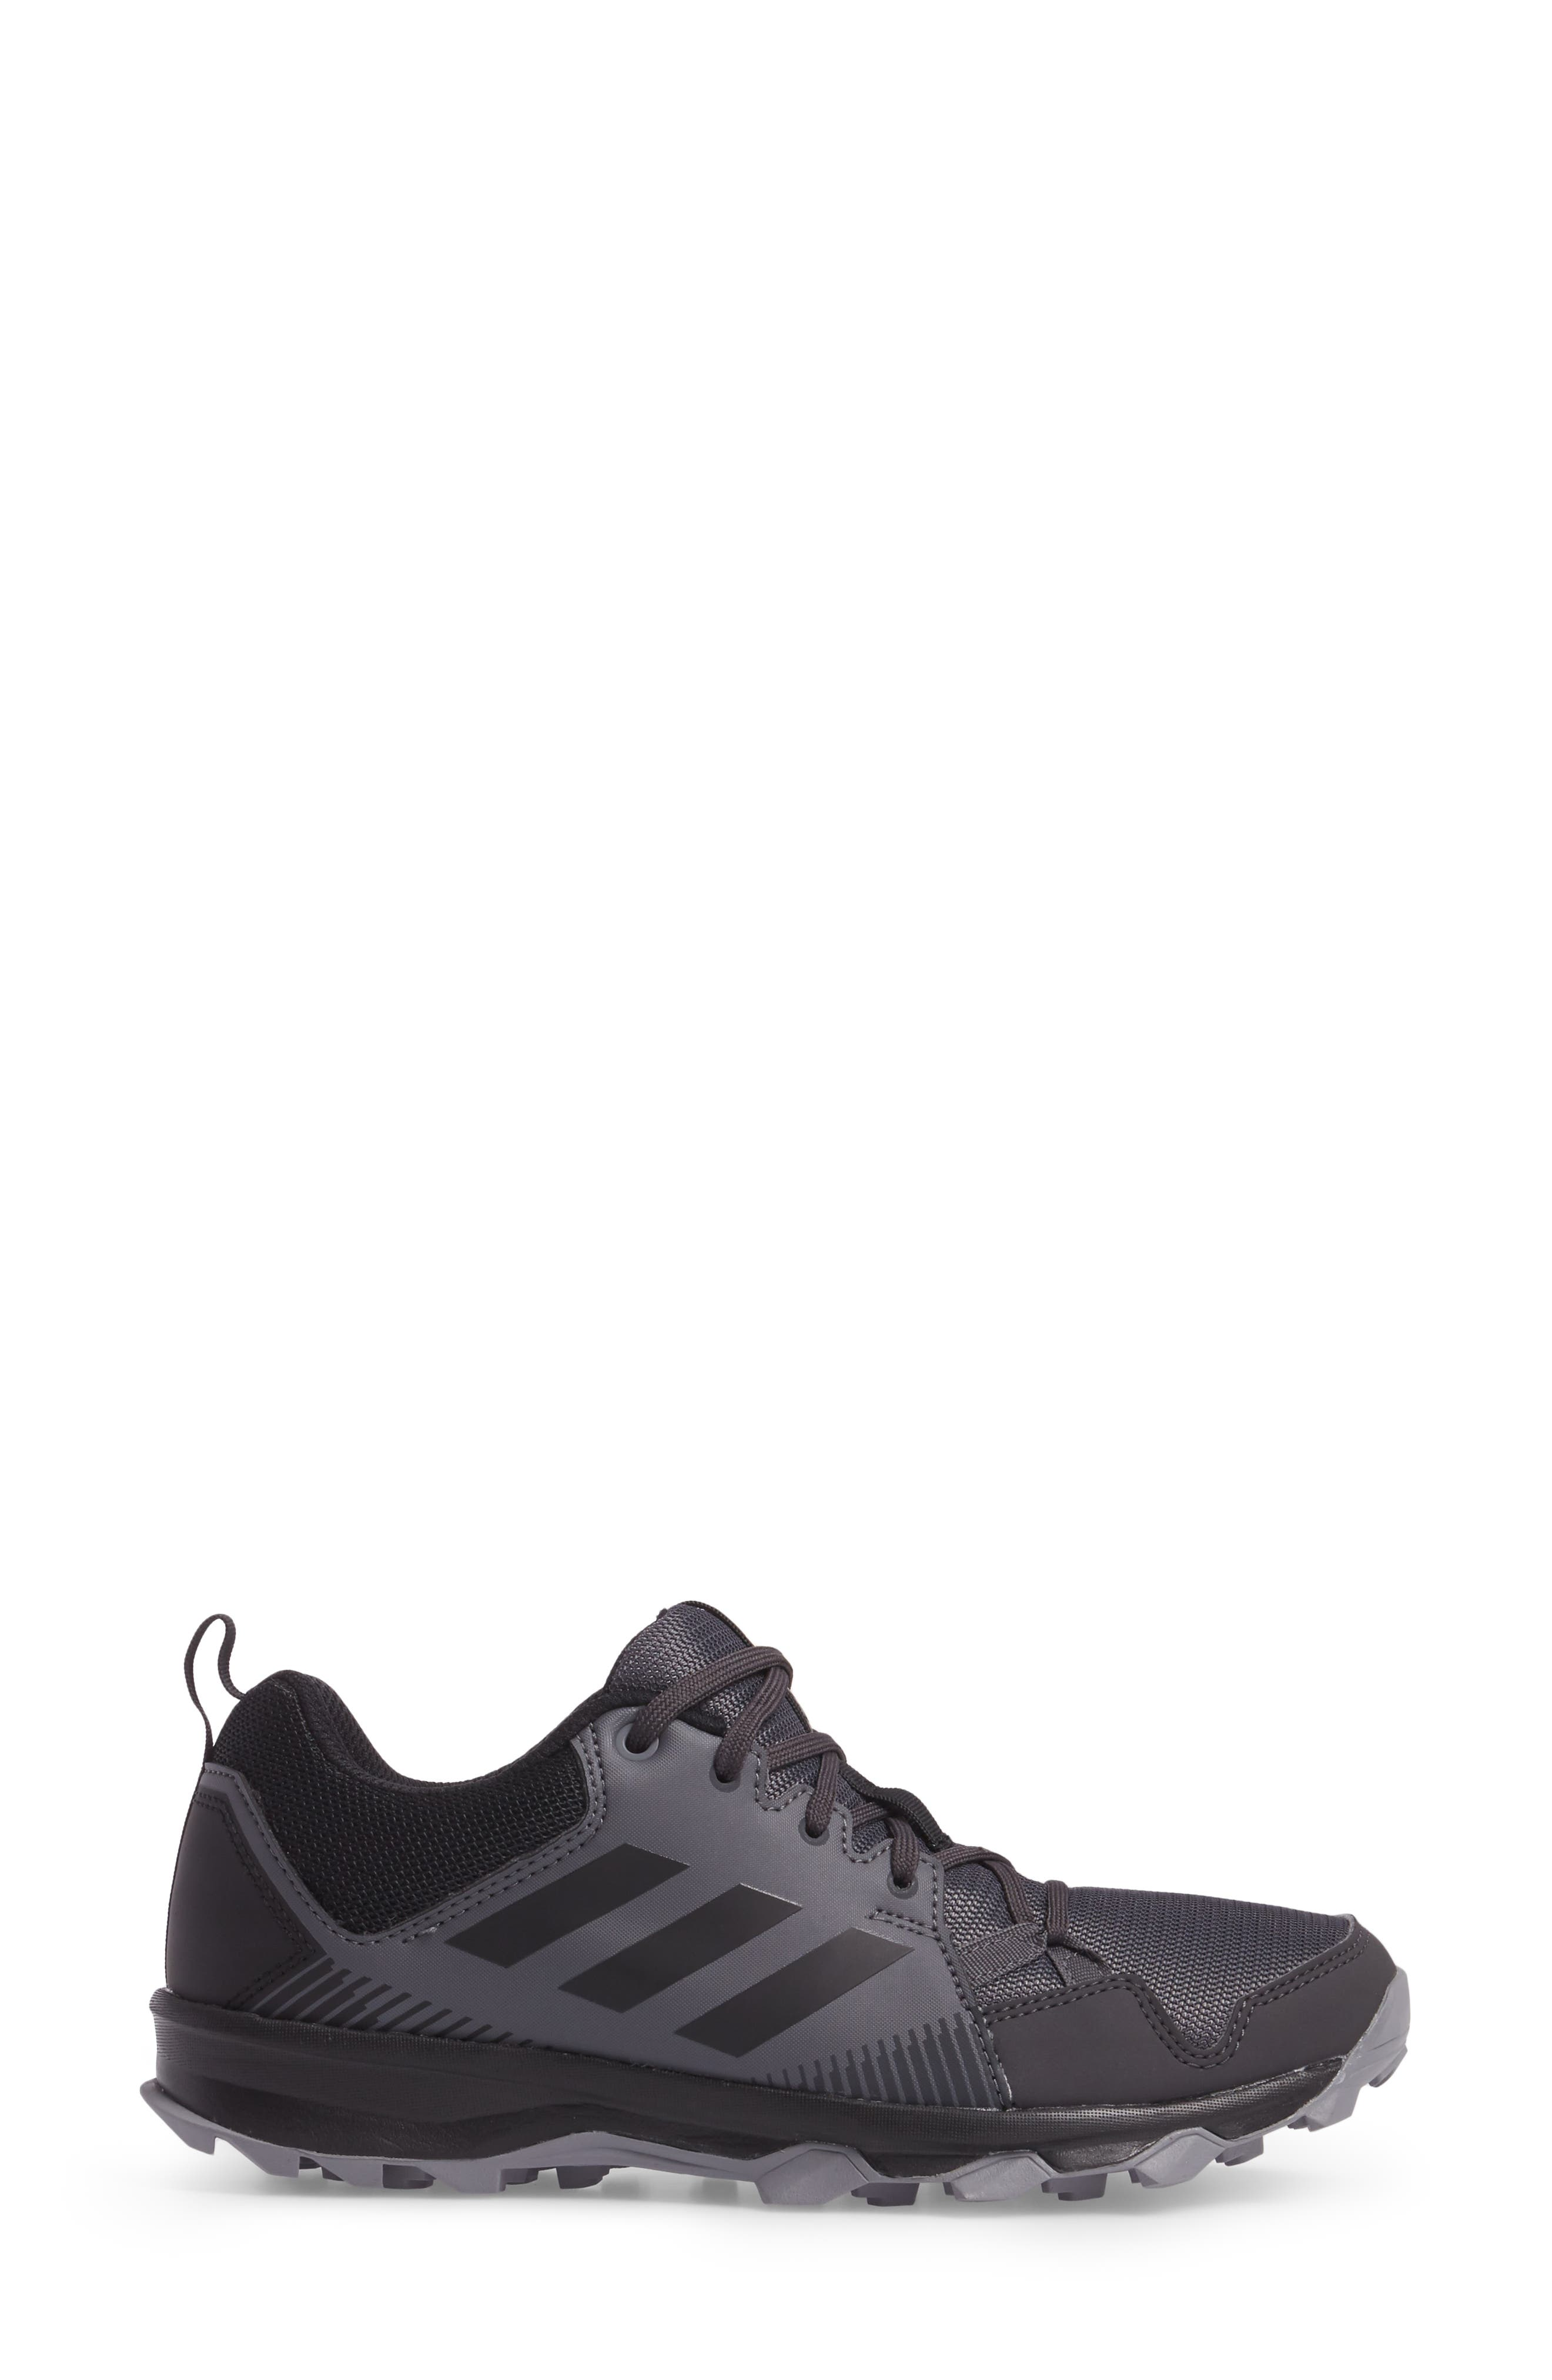 'Tracerocker' Athletic Shoe,                             Alternate thumbnail 3, color,                             002